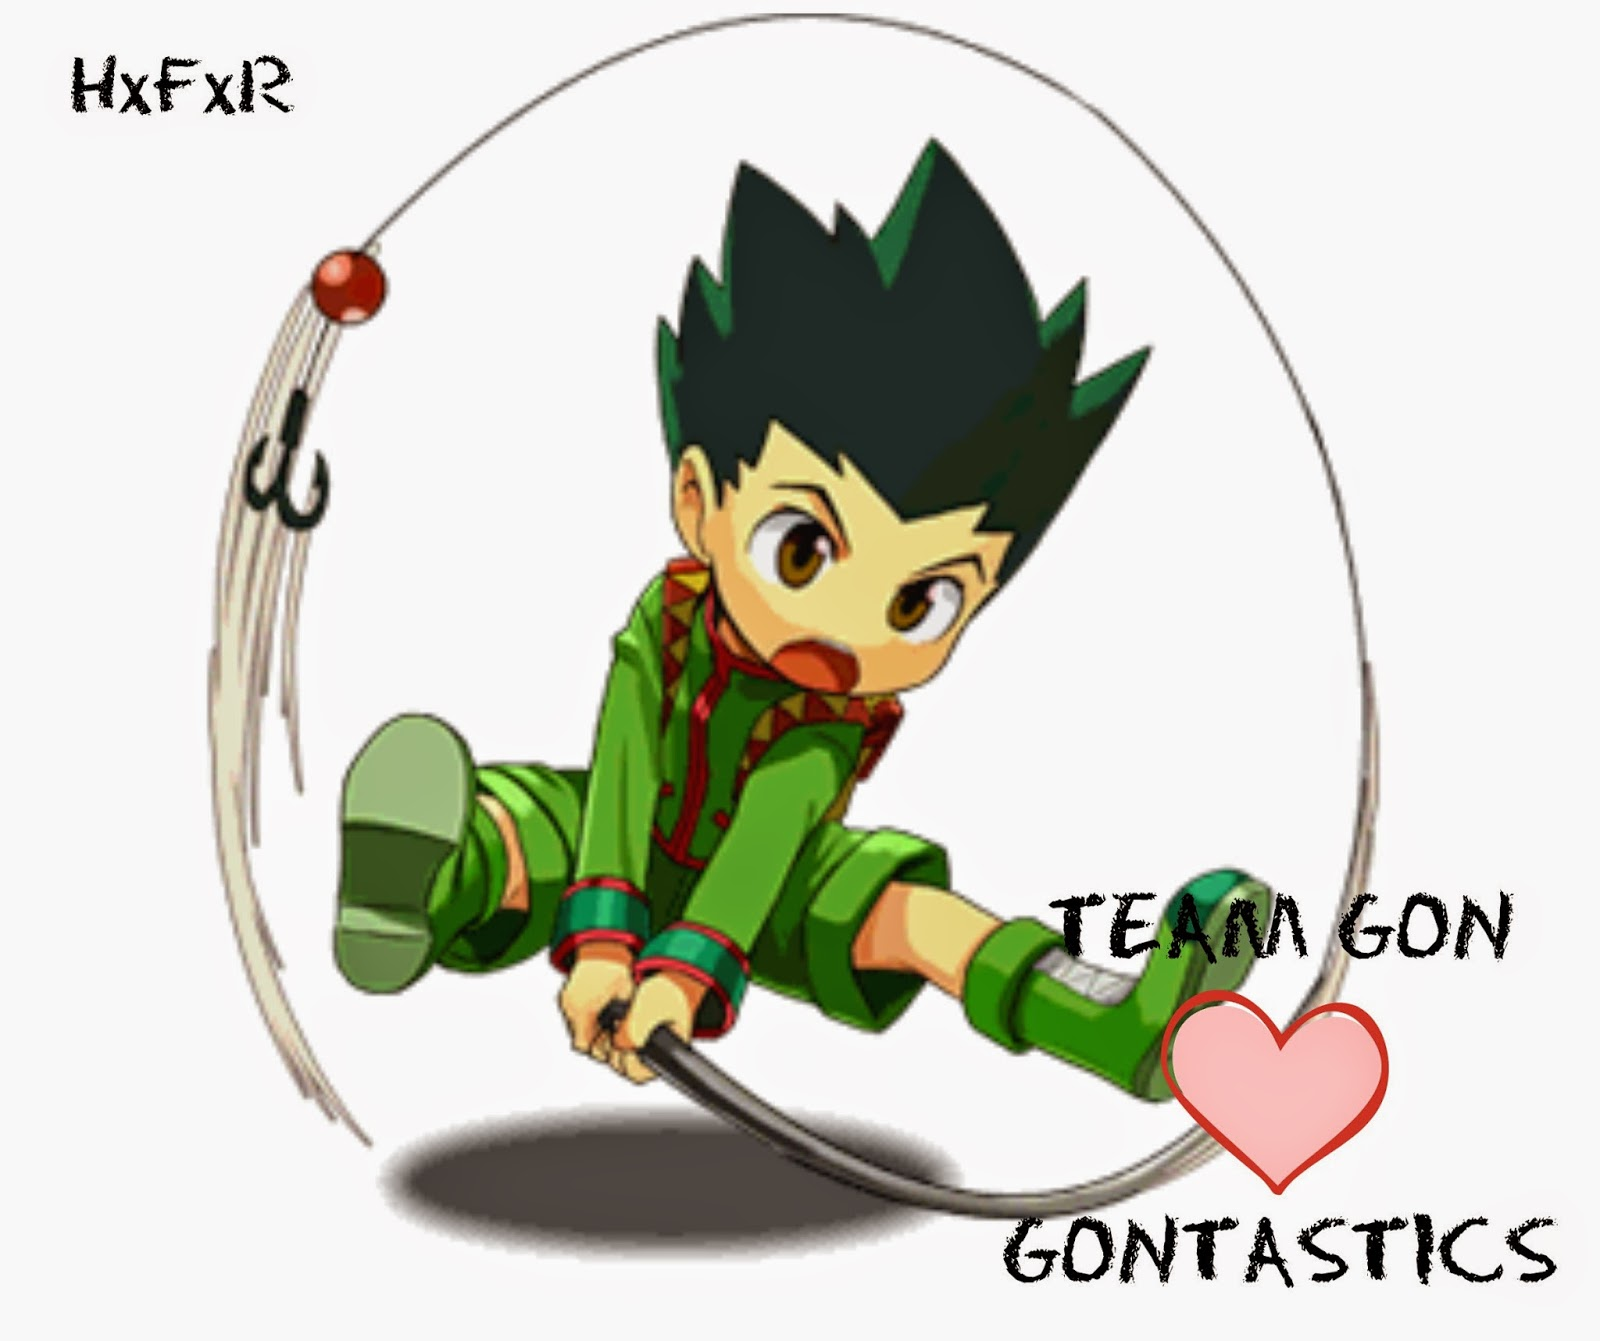 Gon Freecss, Hunter x Hunter, hxfxr